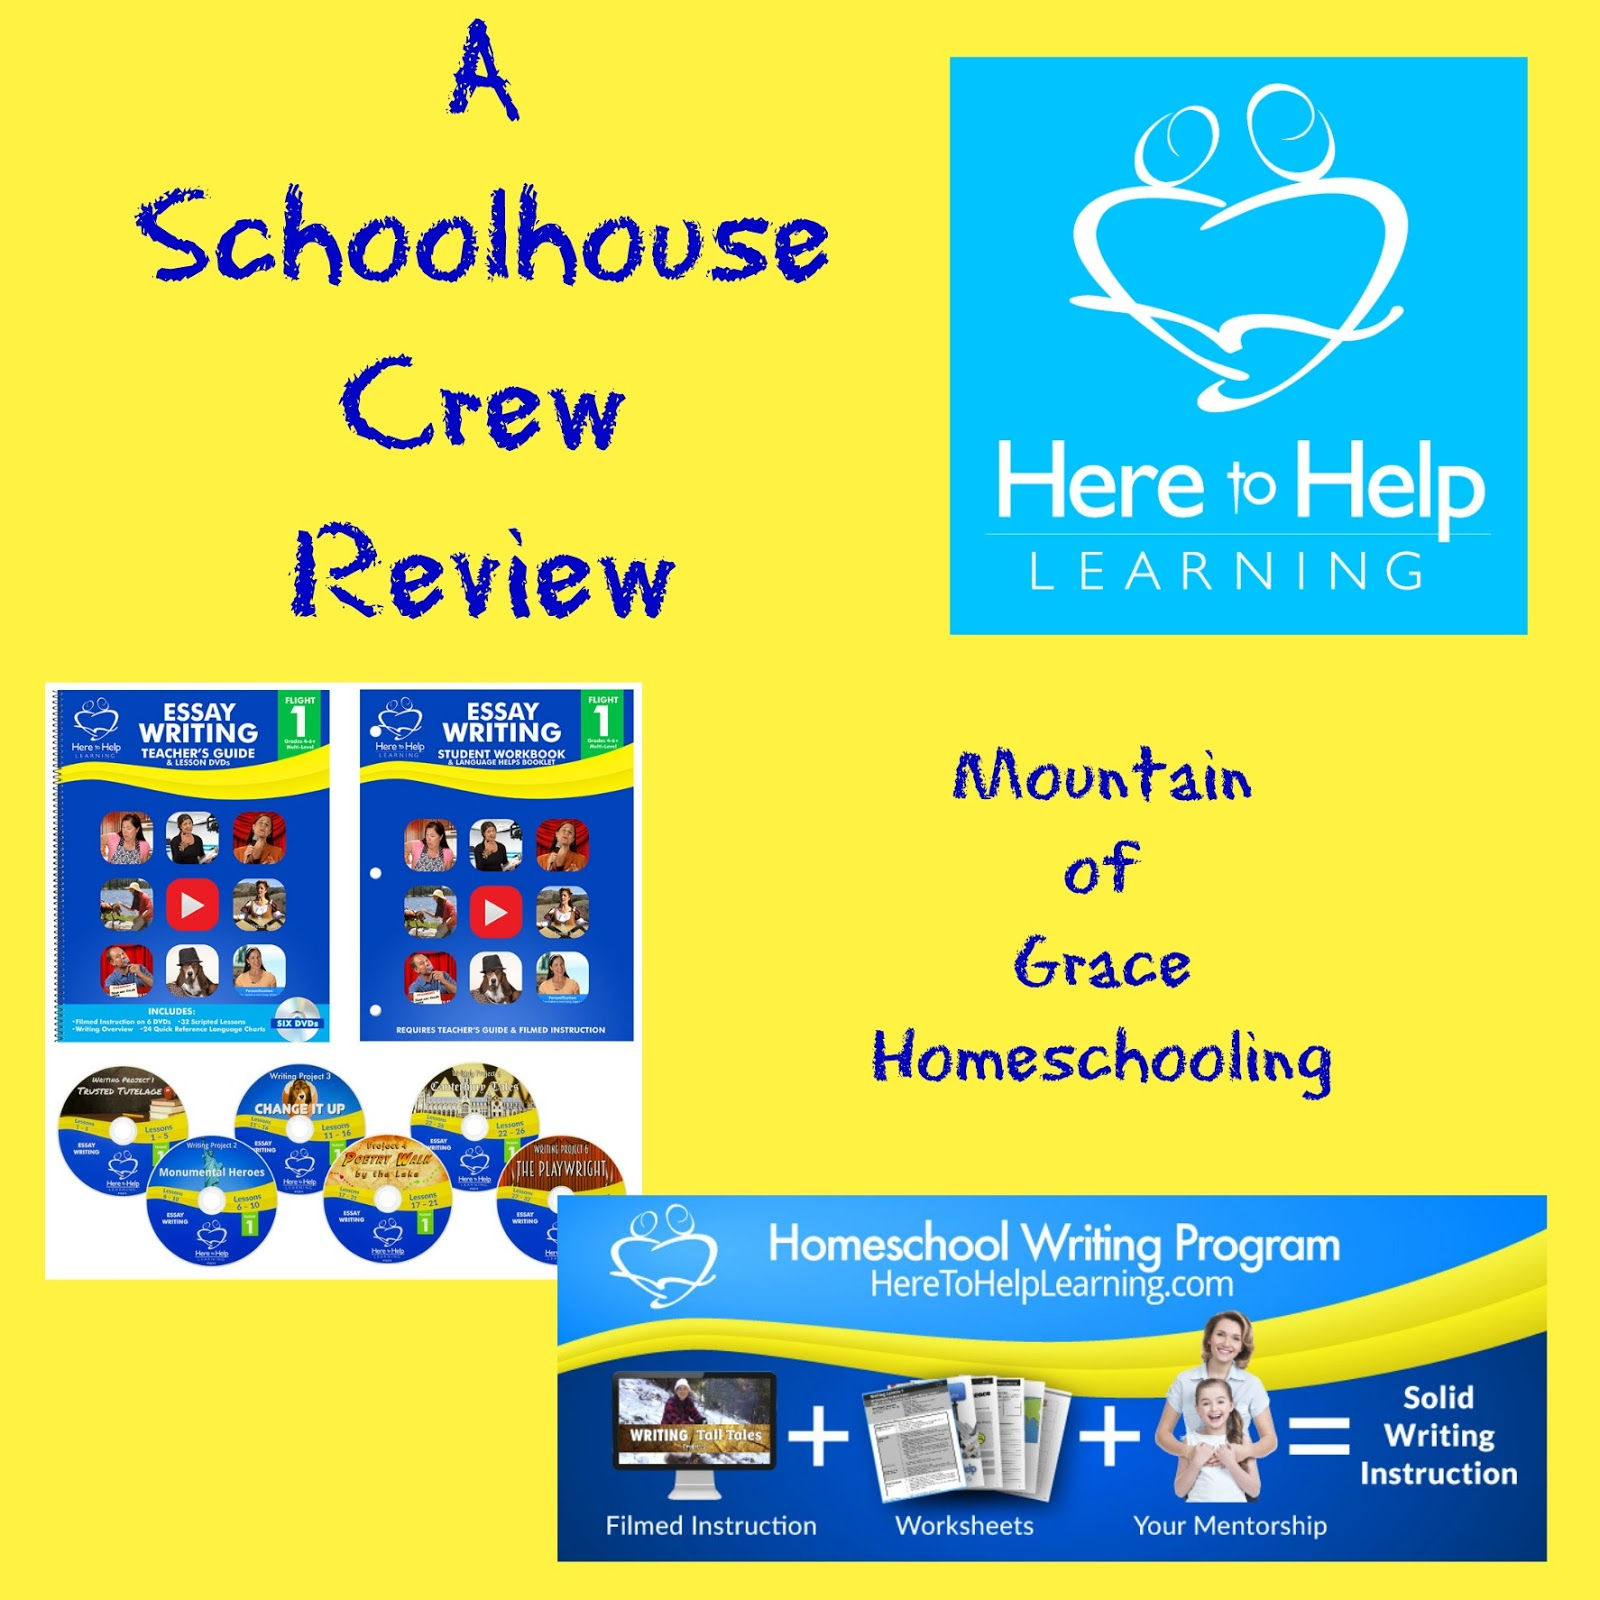 Essay On Homeschooling